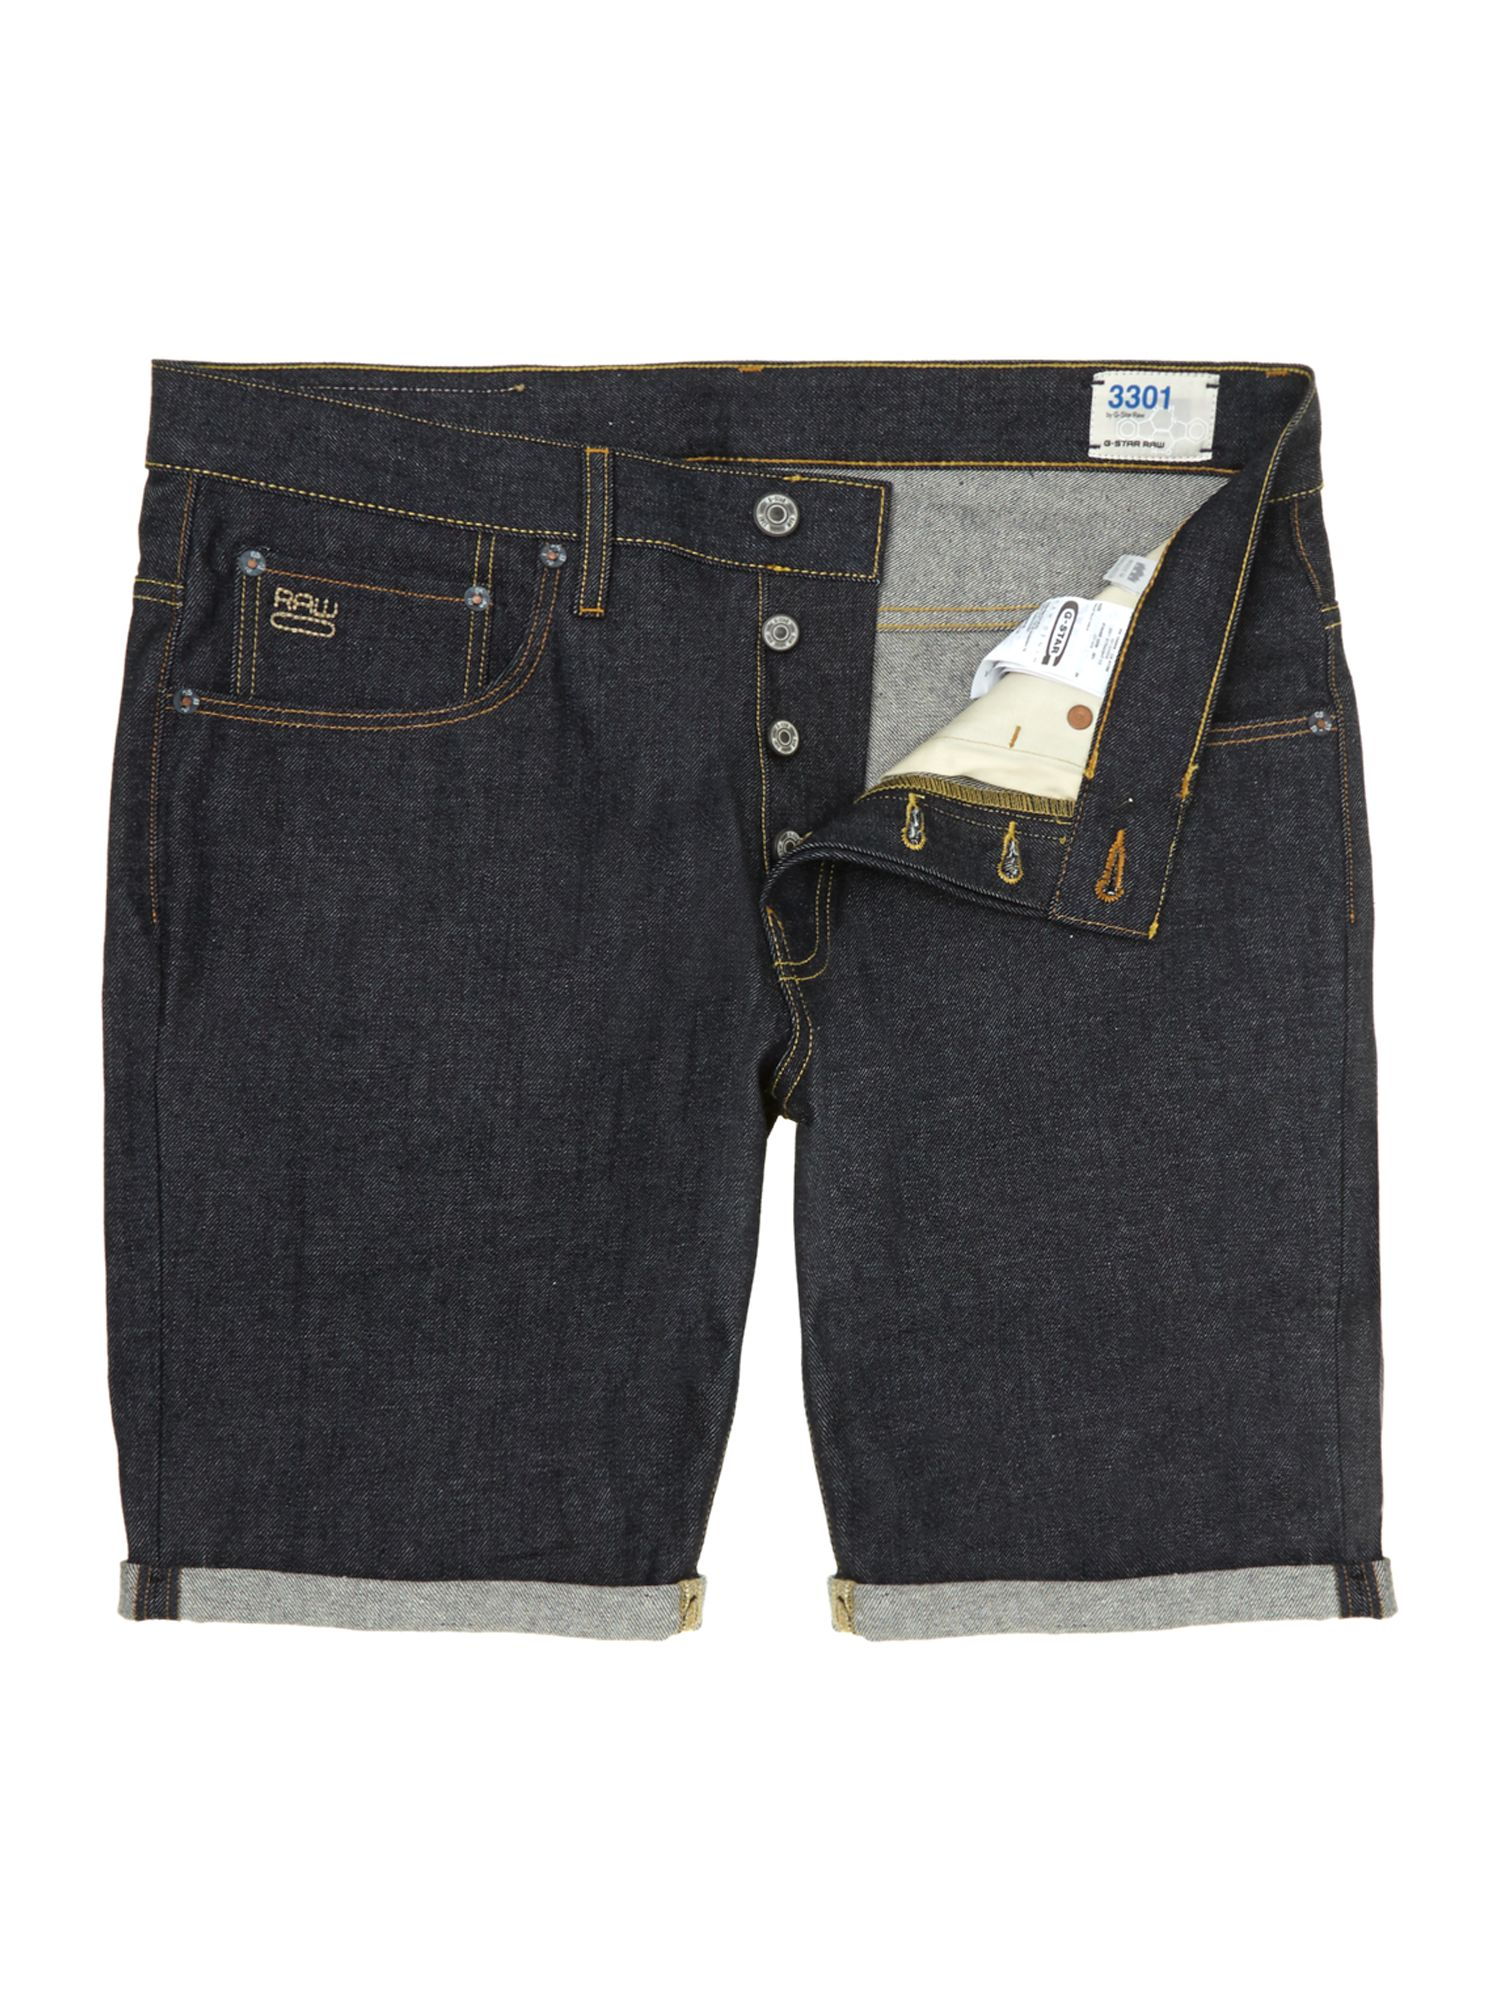 g star raw denim shorts in blue for men lyst. Black Bedroom Furniture Sets. Home Design Ideas